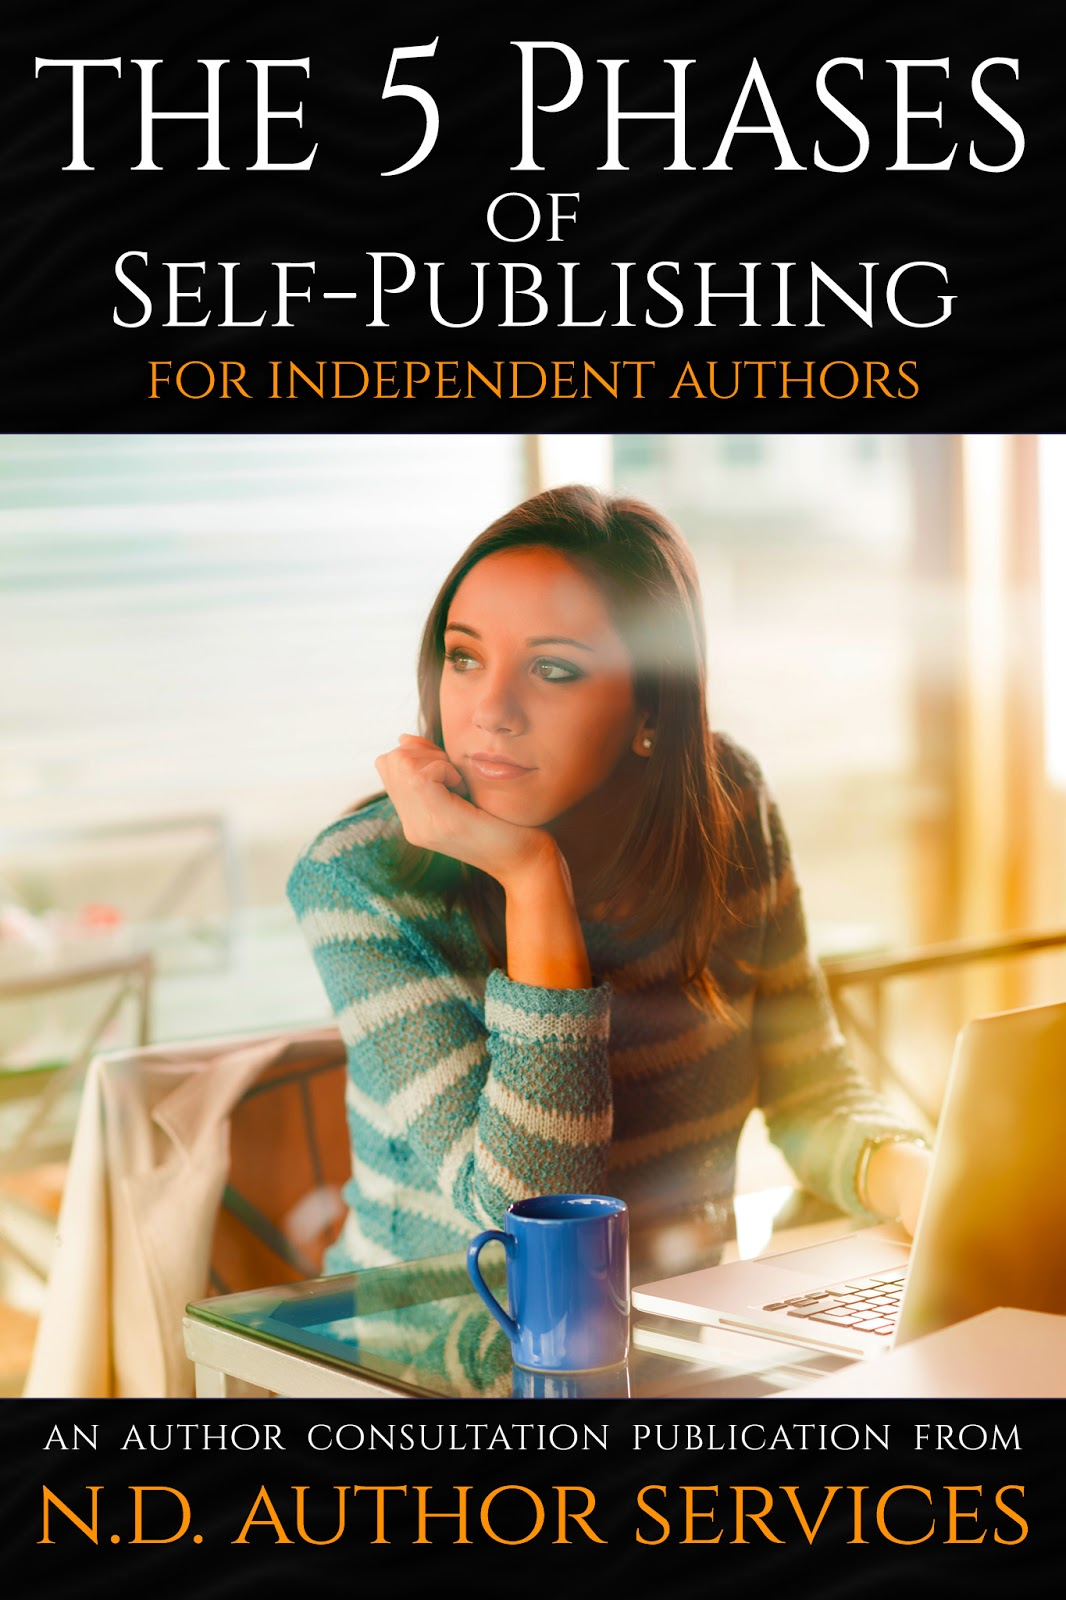 The 5 Phases of Self-Publishing